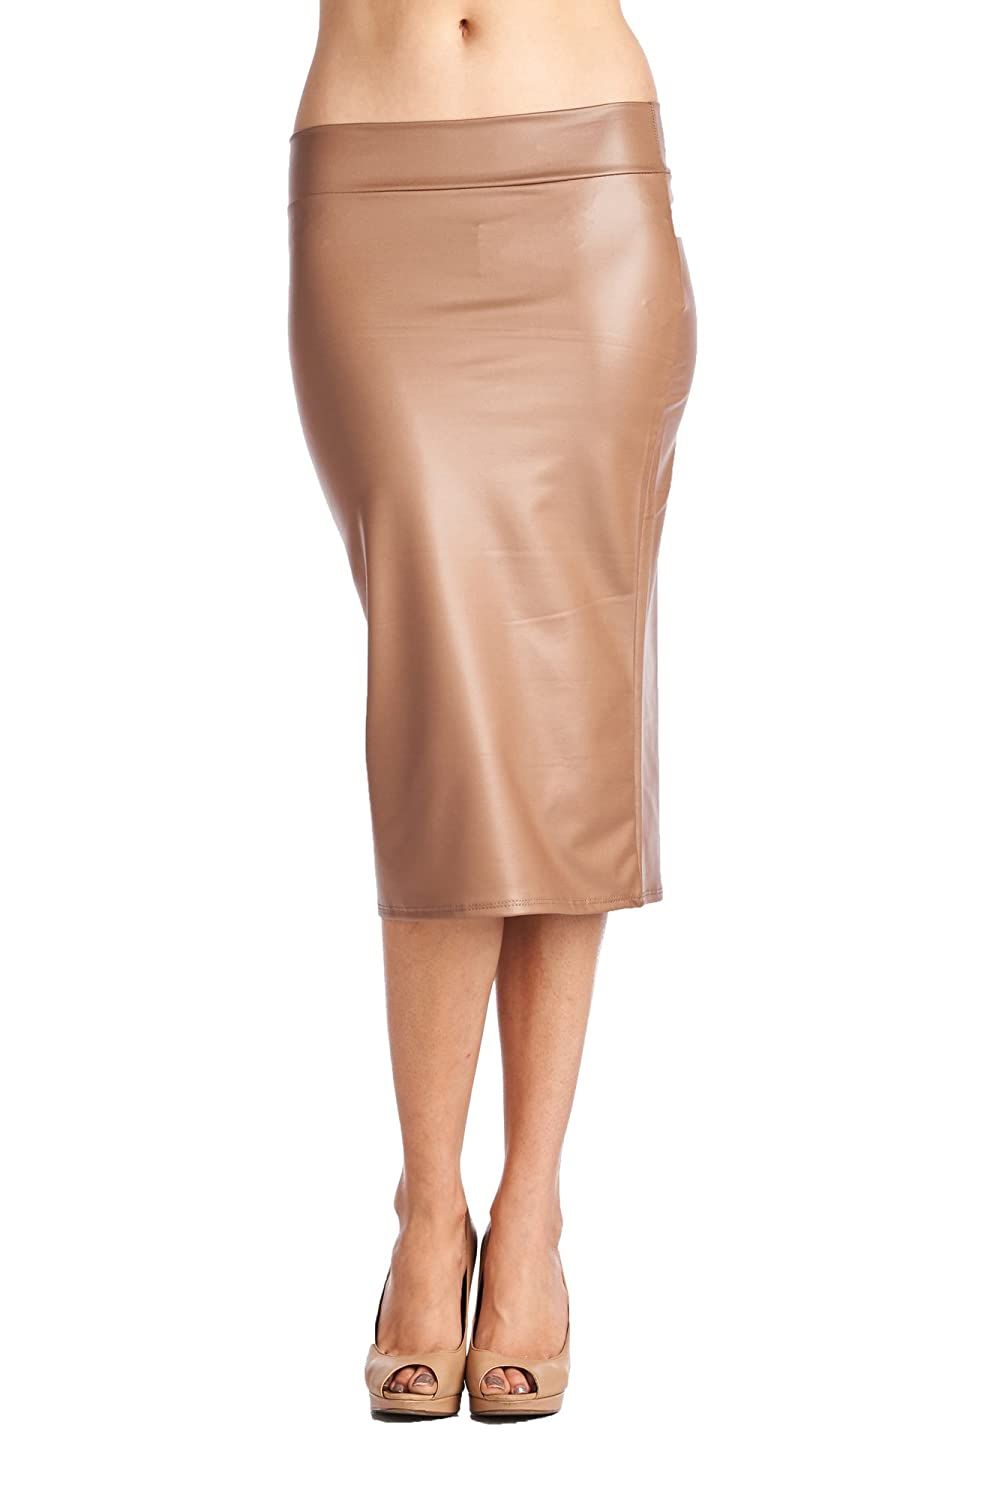 82 Days Women'S Casual To Office Wear Below Knee Various Style Of Skirts SK-9014PT-SLD